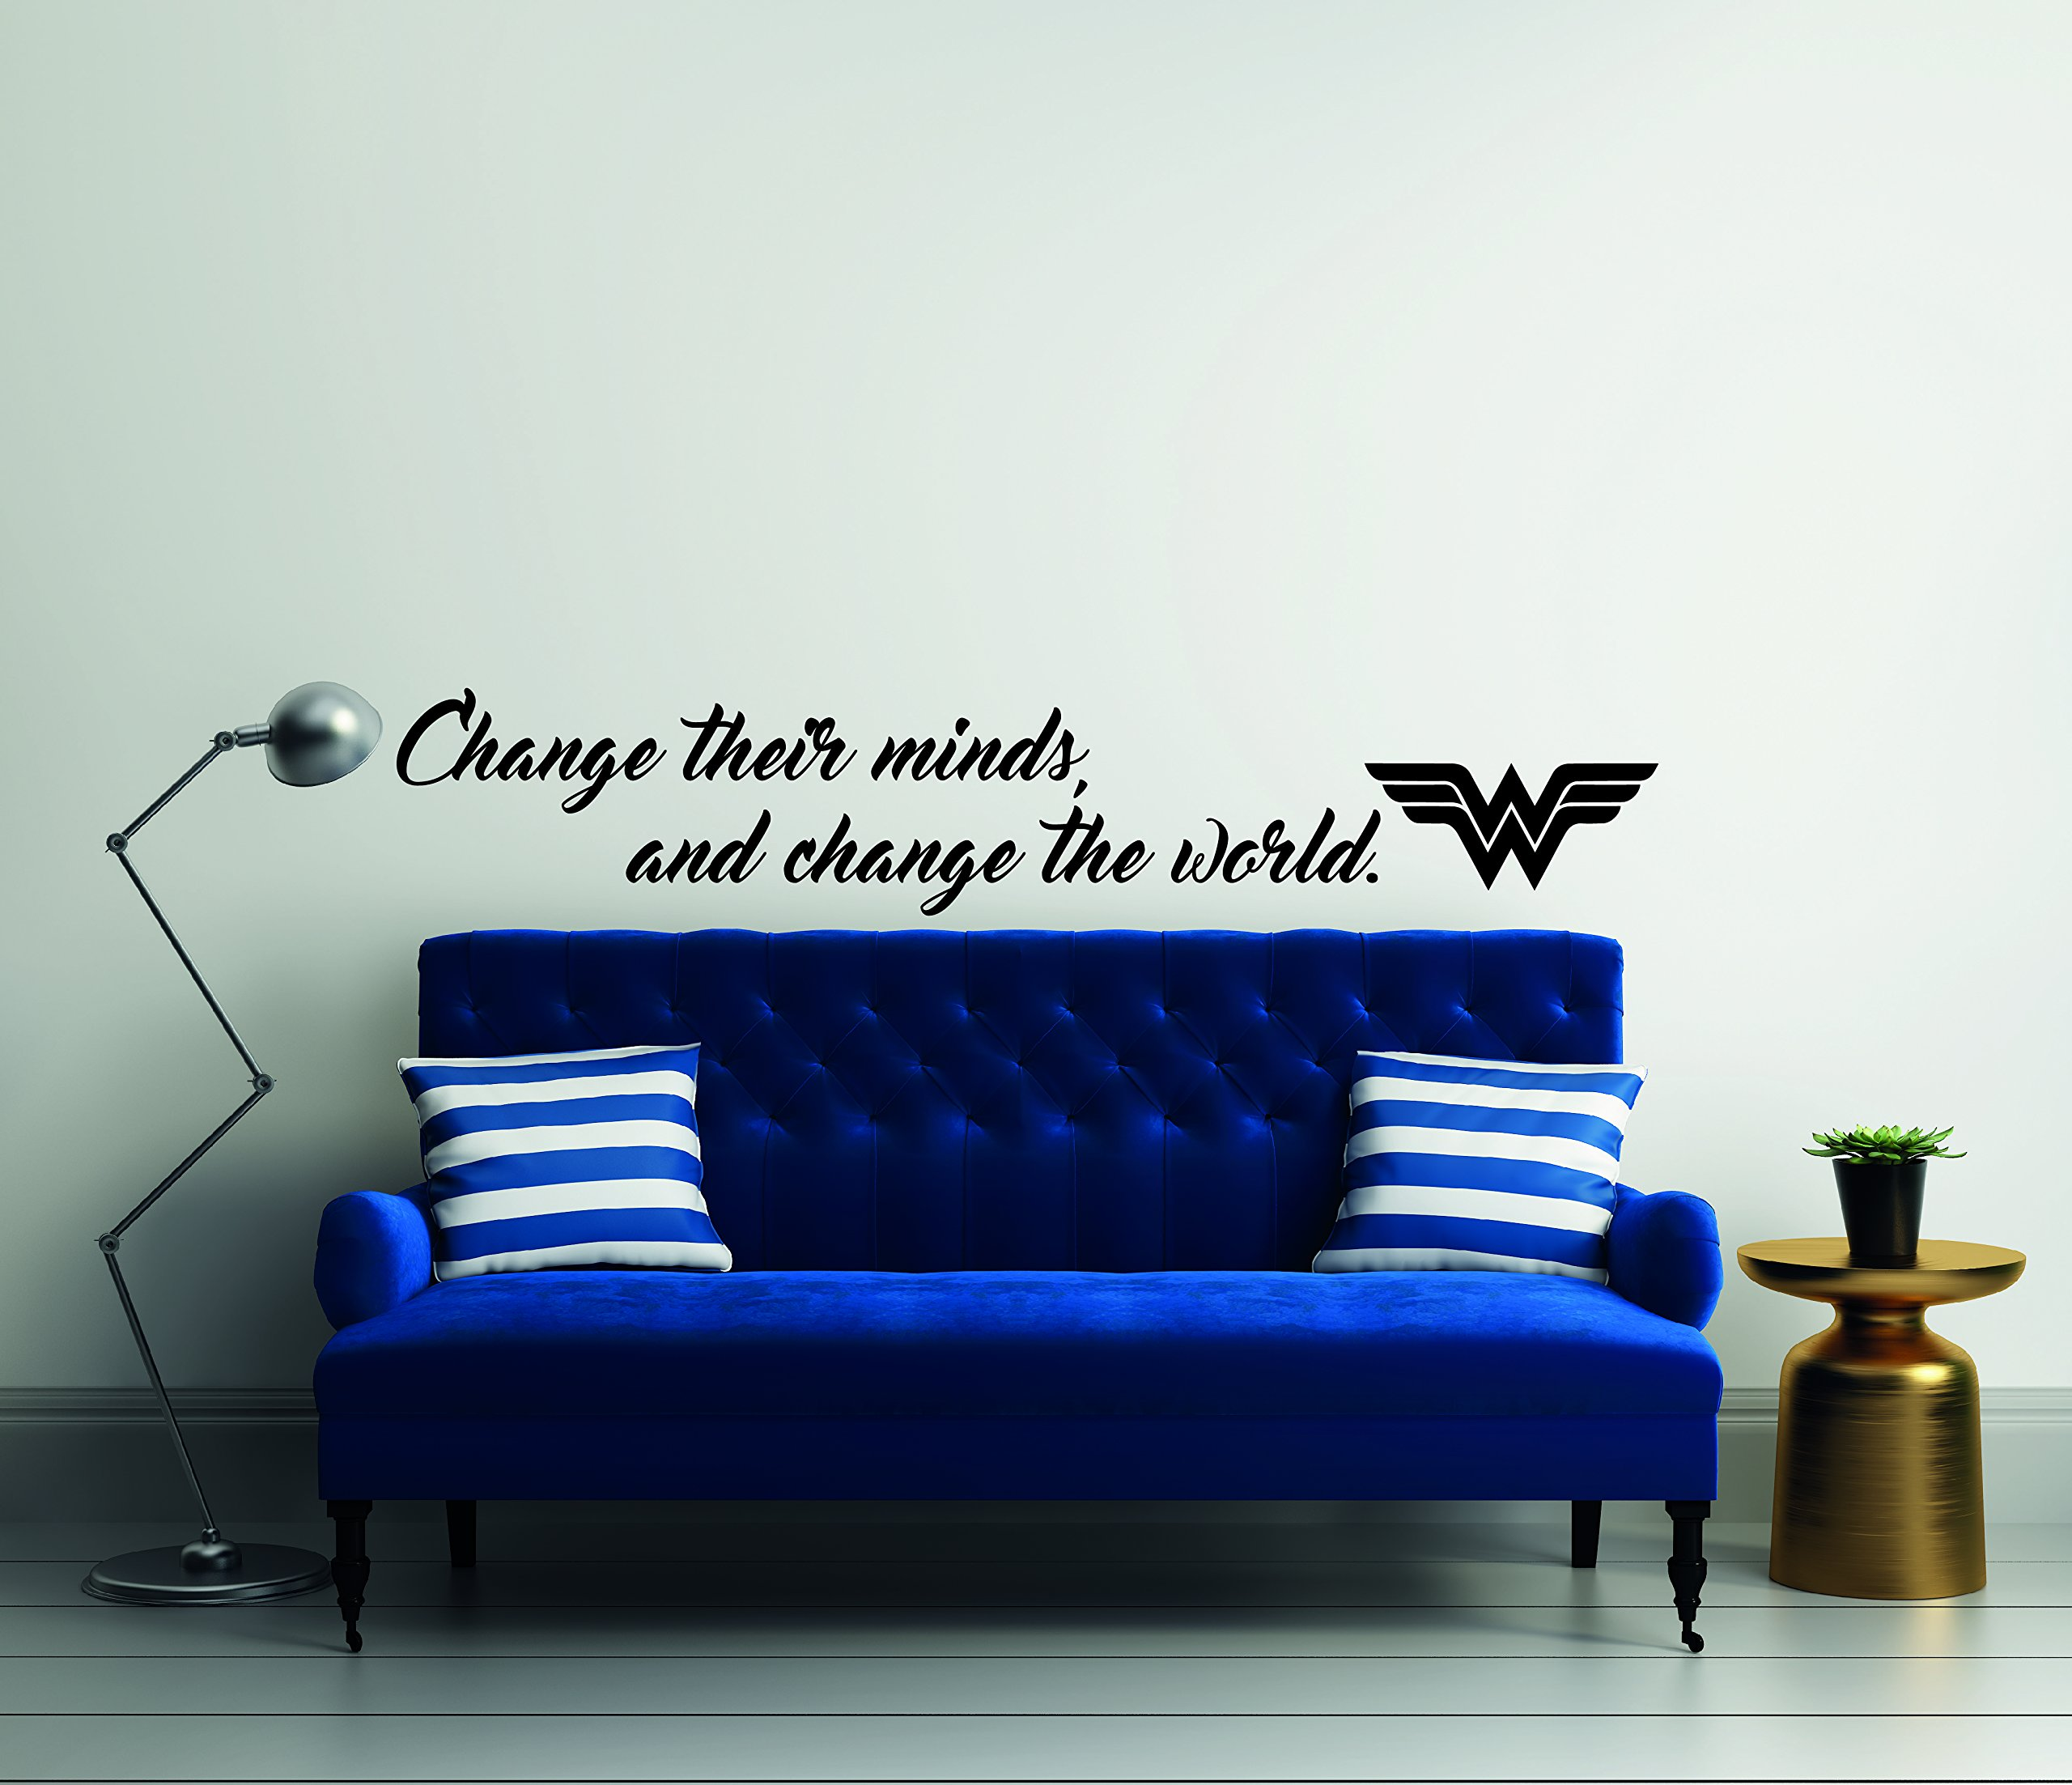 Change Their Minds And Change The World Quote Wonder Woman Mural Wall Decal For Home Bedroom Living Room (Wide 40'' x 7'' Height)